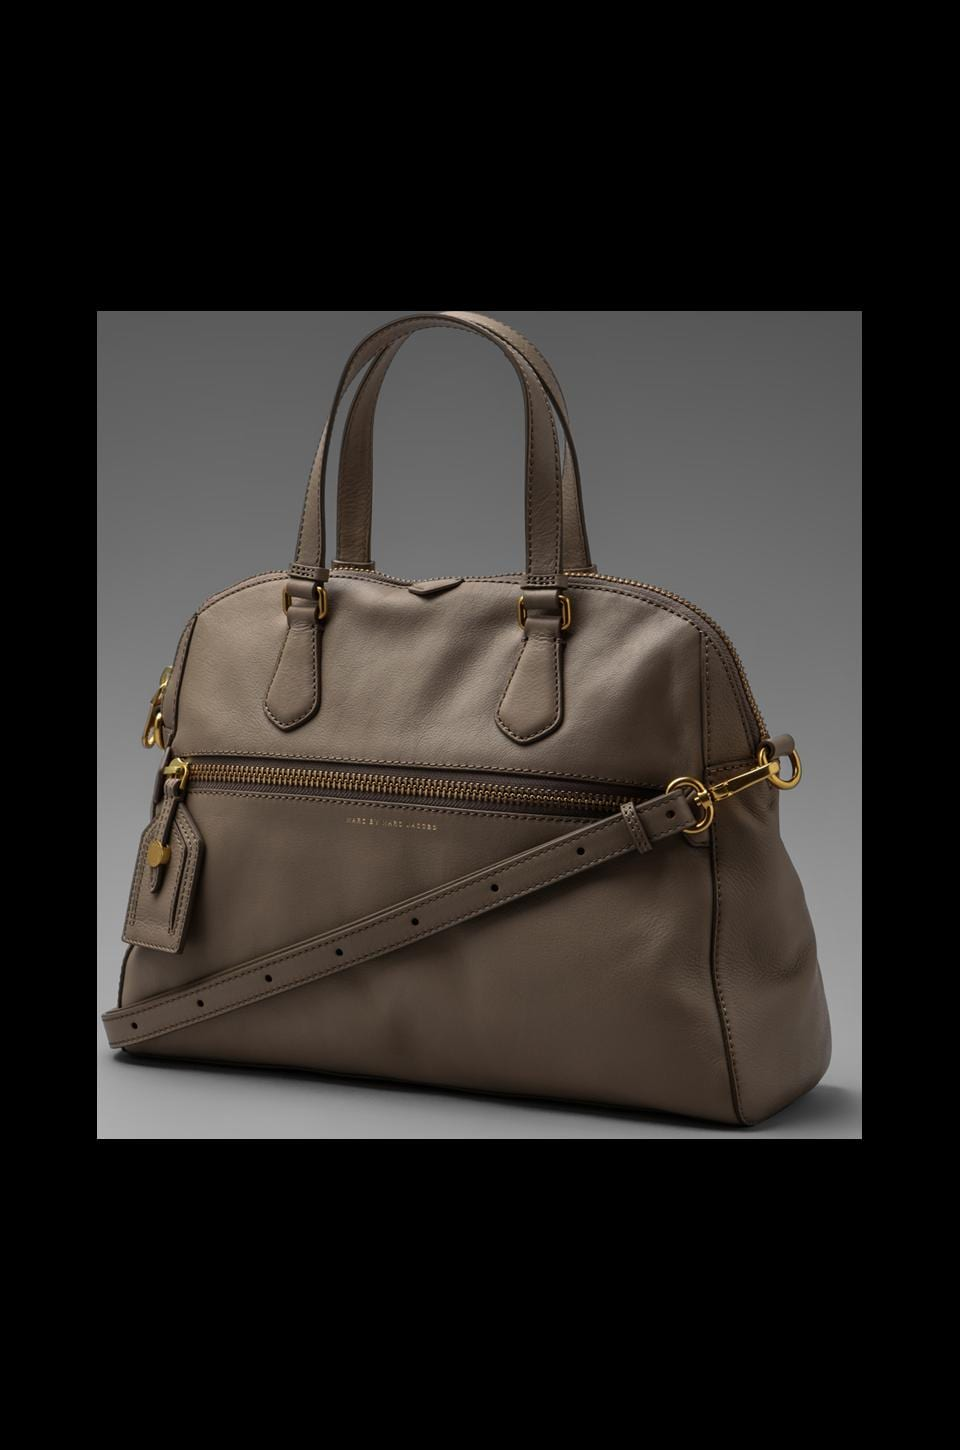 Marc by Marc Jacobs Globetrotter Calamity Rei in Cement